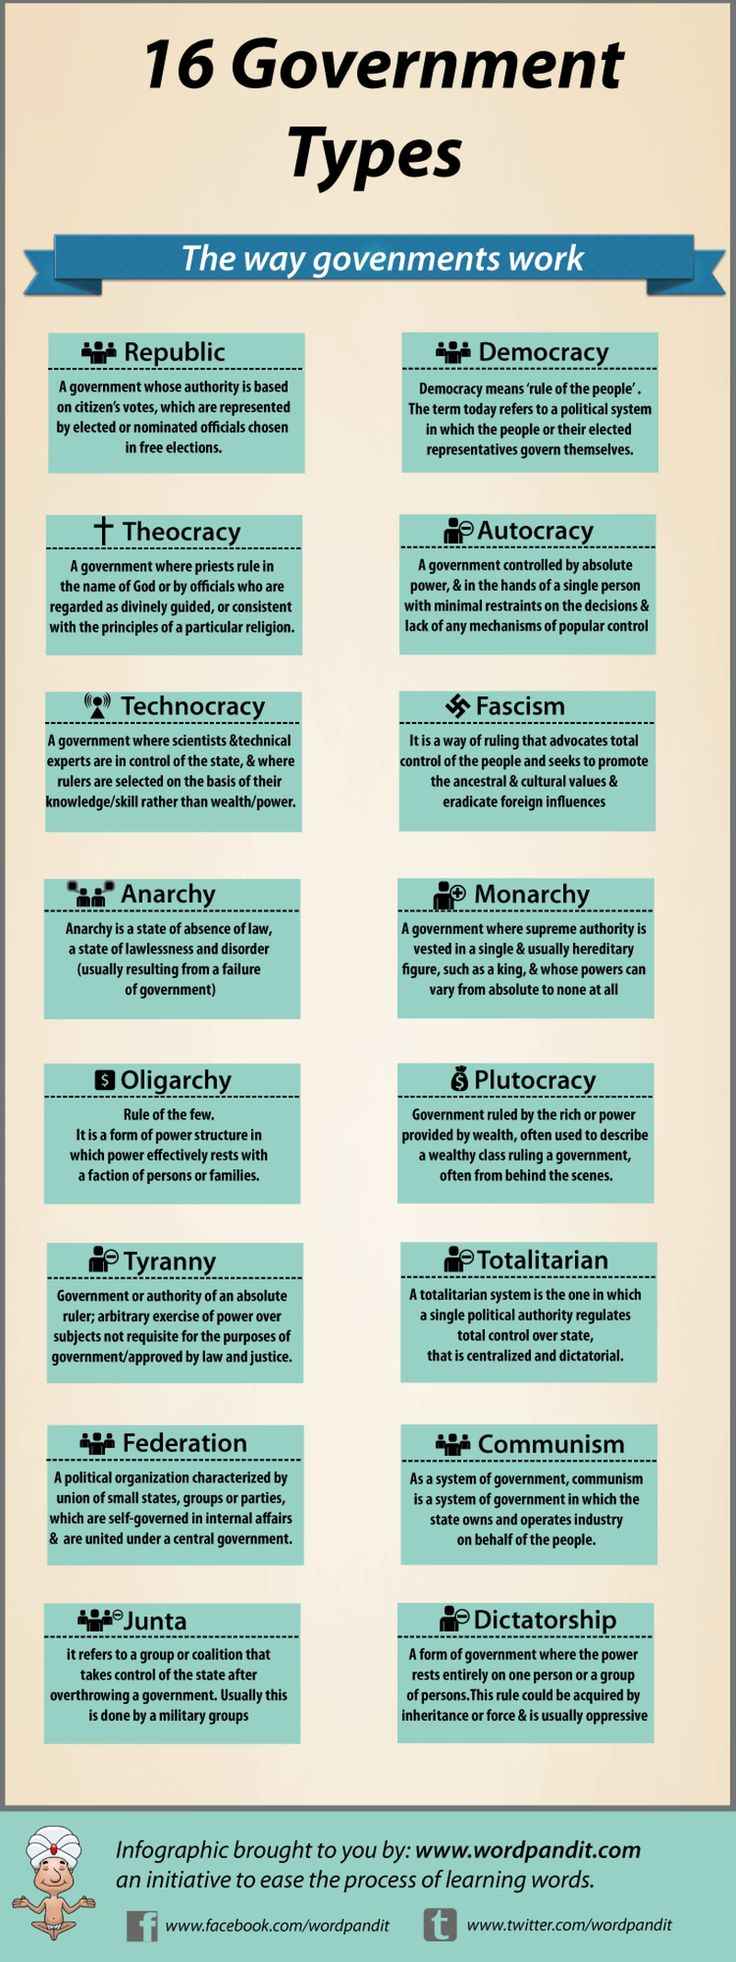 16 Government Types